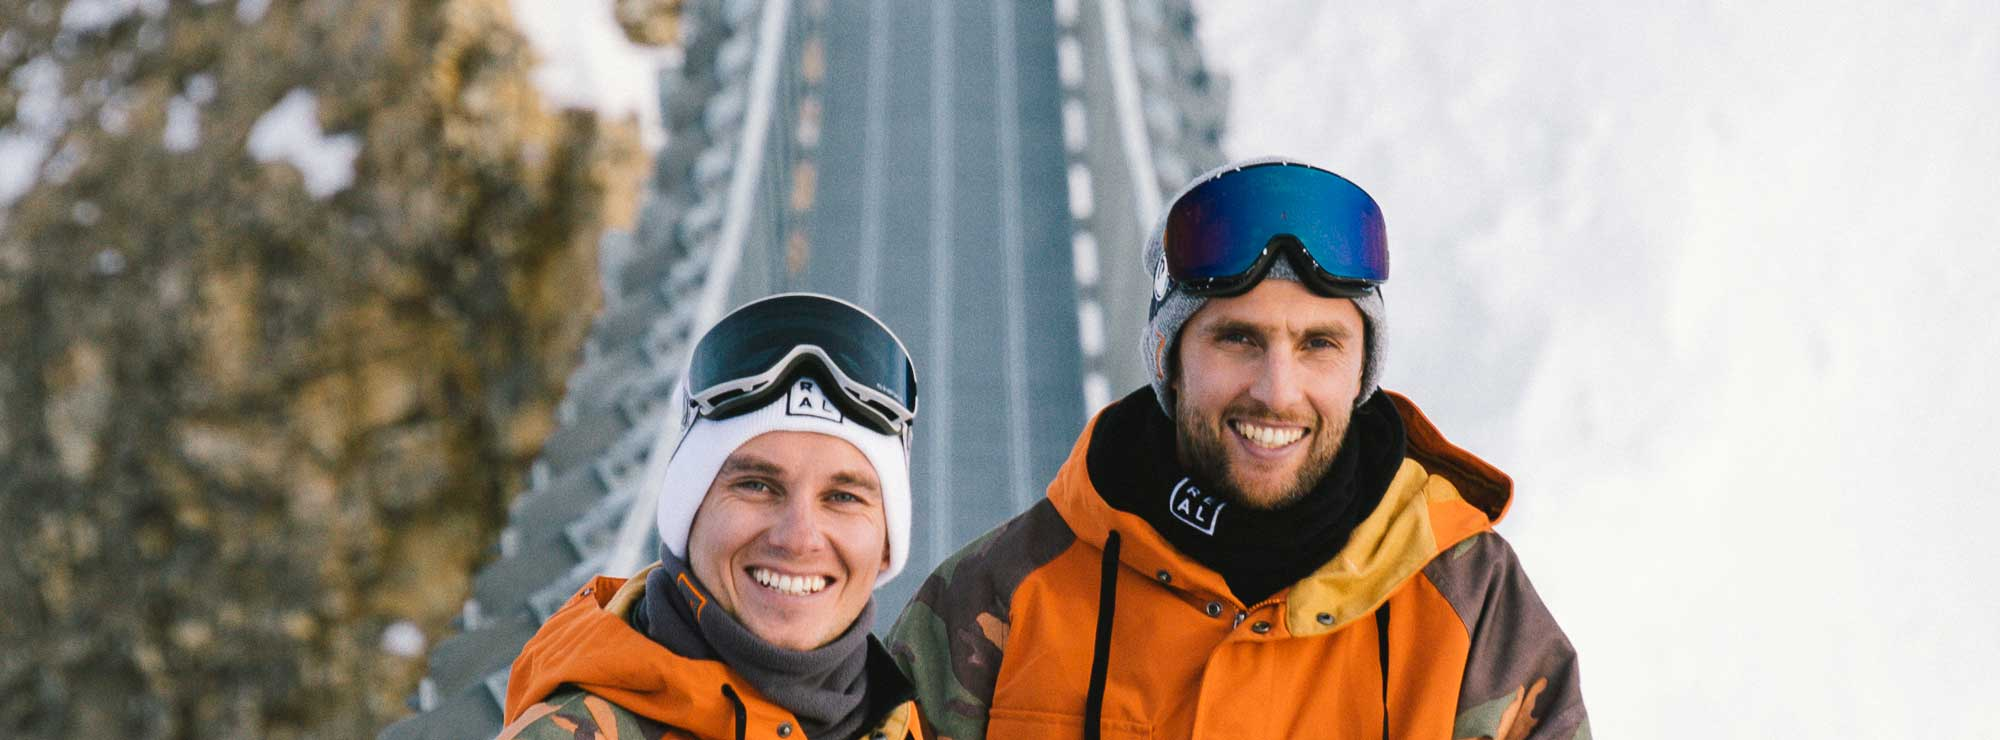 dragon goggles potrait of real snowboarding instructors